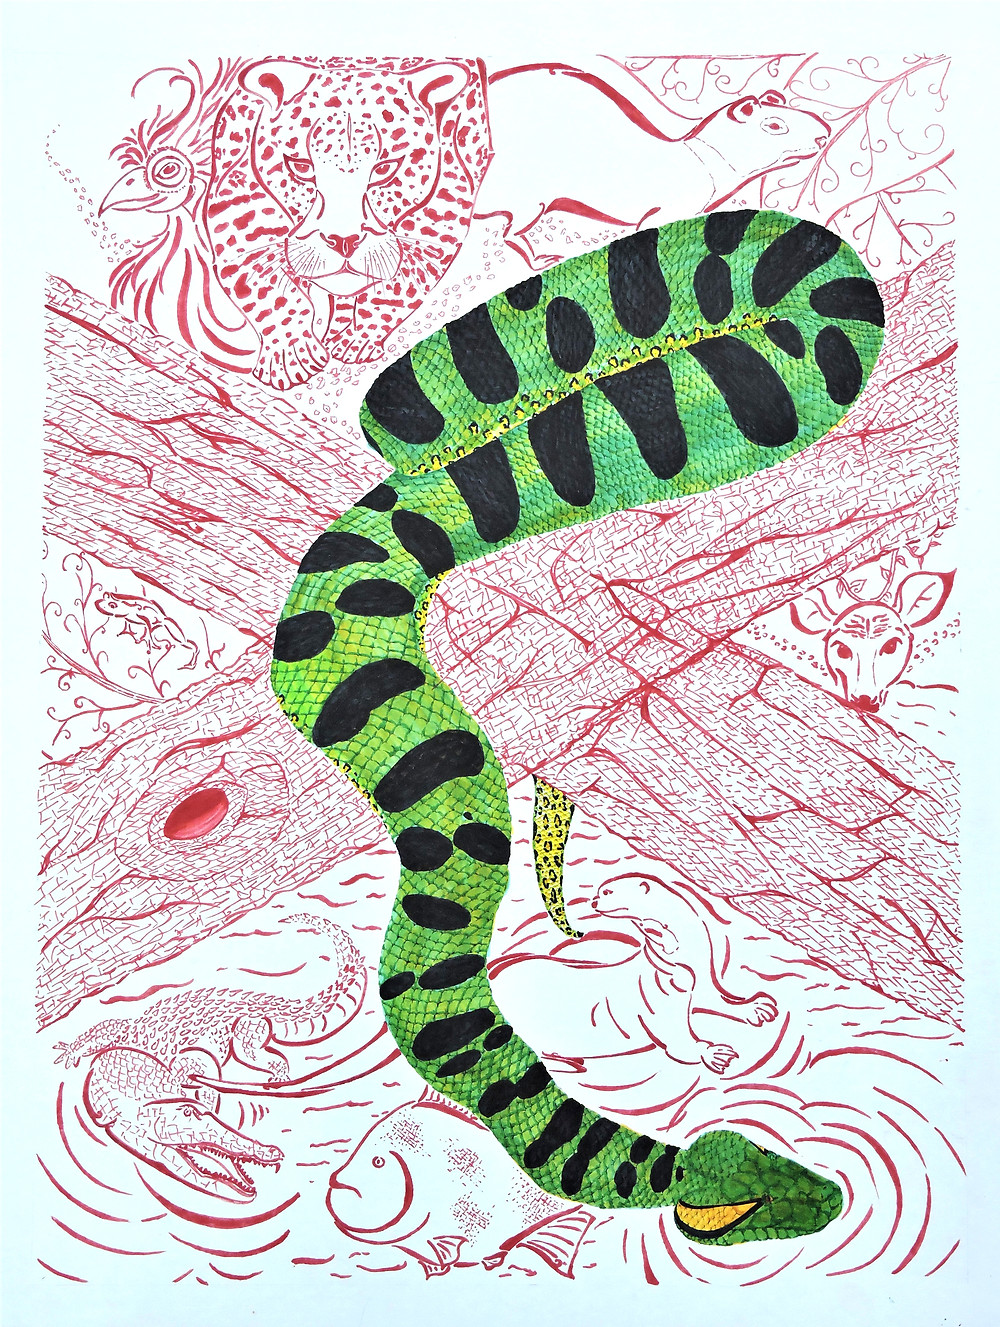 My main aim in this piece was to show my appreciation of wildlife in Guyana; it is my belief that we do not do enough to ensure the wellbeing of our animals here in this country, especially the anaconda which strikes fear in the hearts of many. The materials that I used to produce this piece are pencils, illustration pens (specifically 0.05 mm and 0.2 mm in thickness), alcohol-based markers, and white cardboard (also known as poster board).